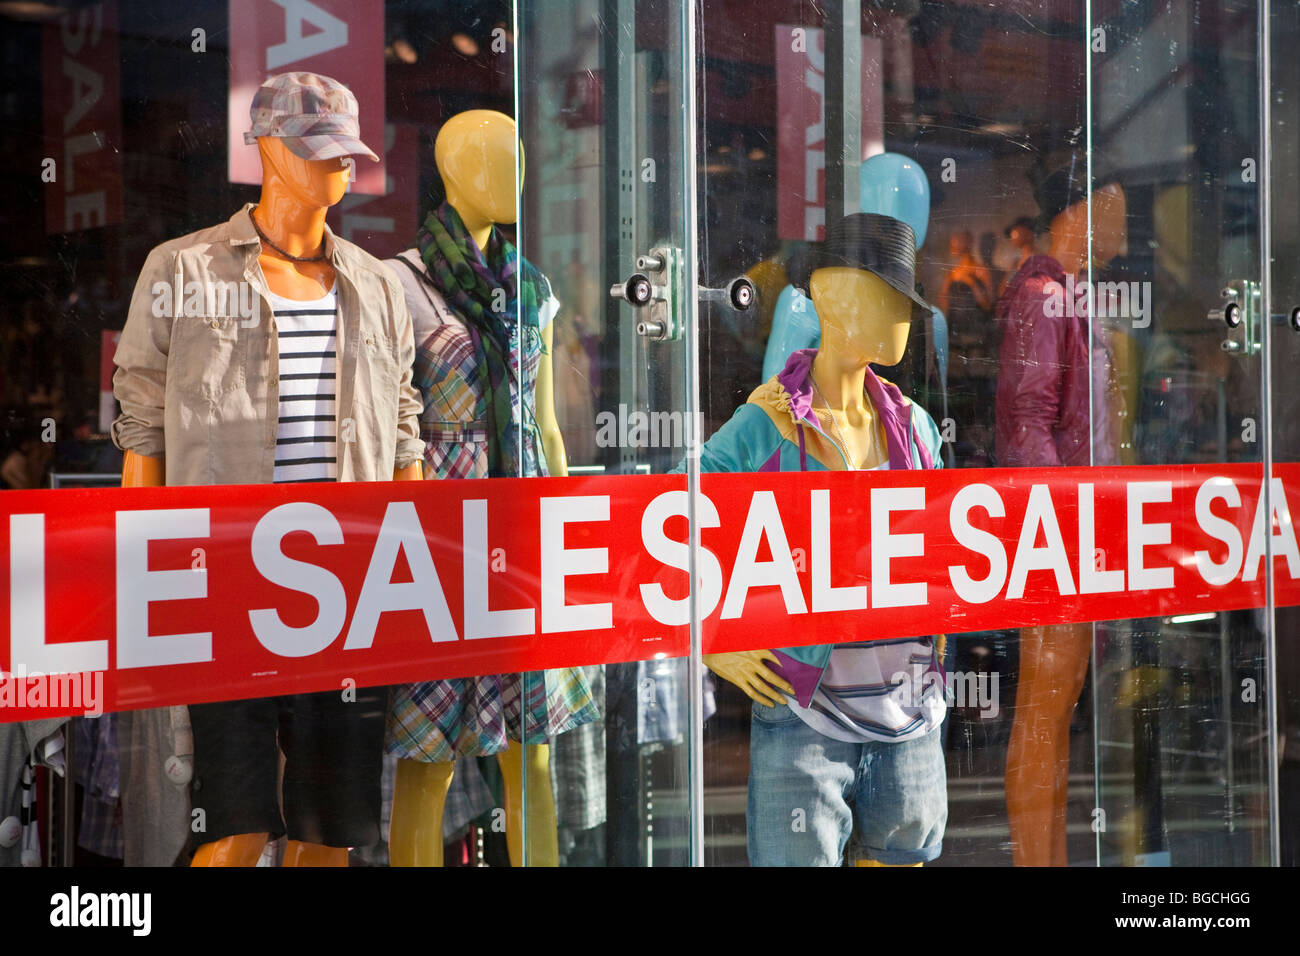 Big 'SALE' sign across a clothing store window, Toronto, Canada - Stock Image